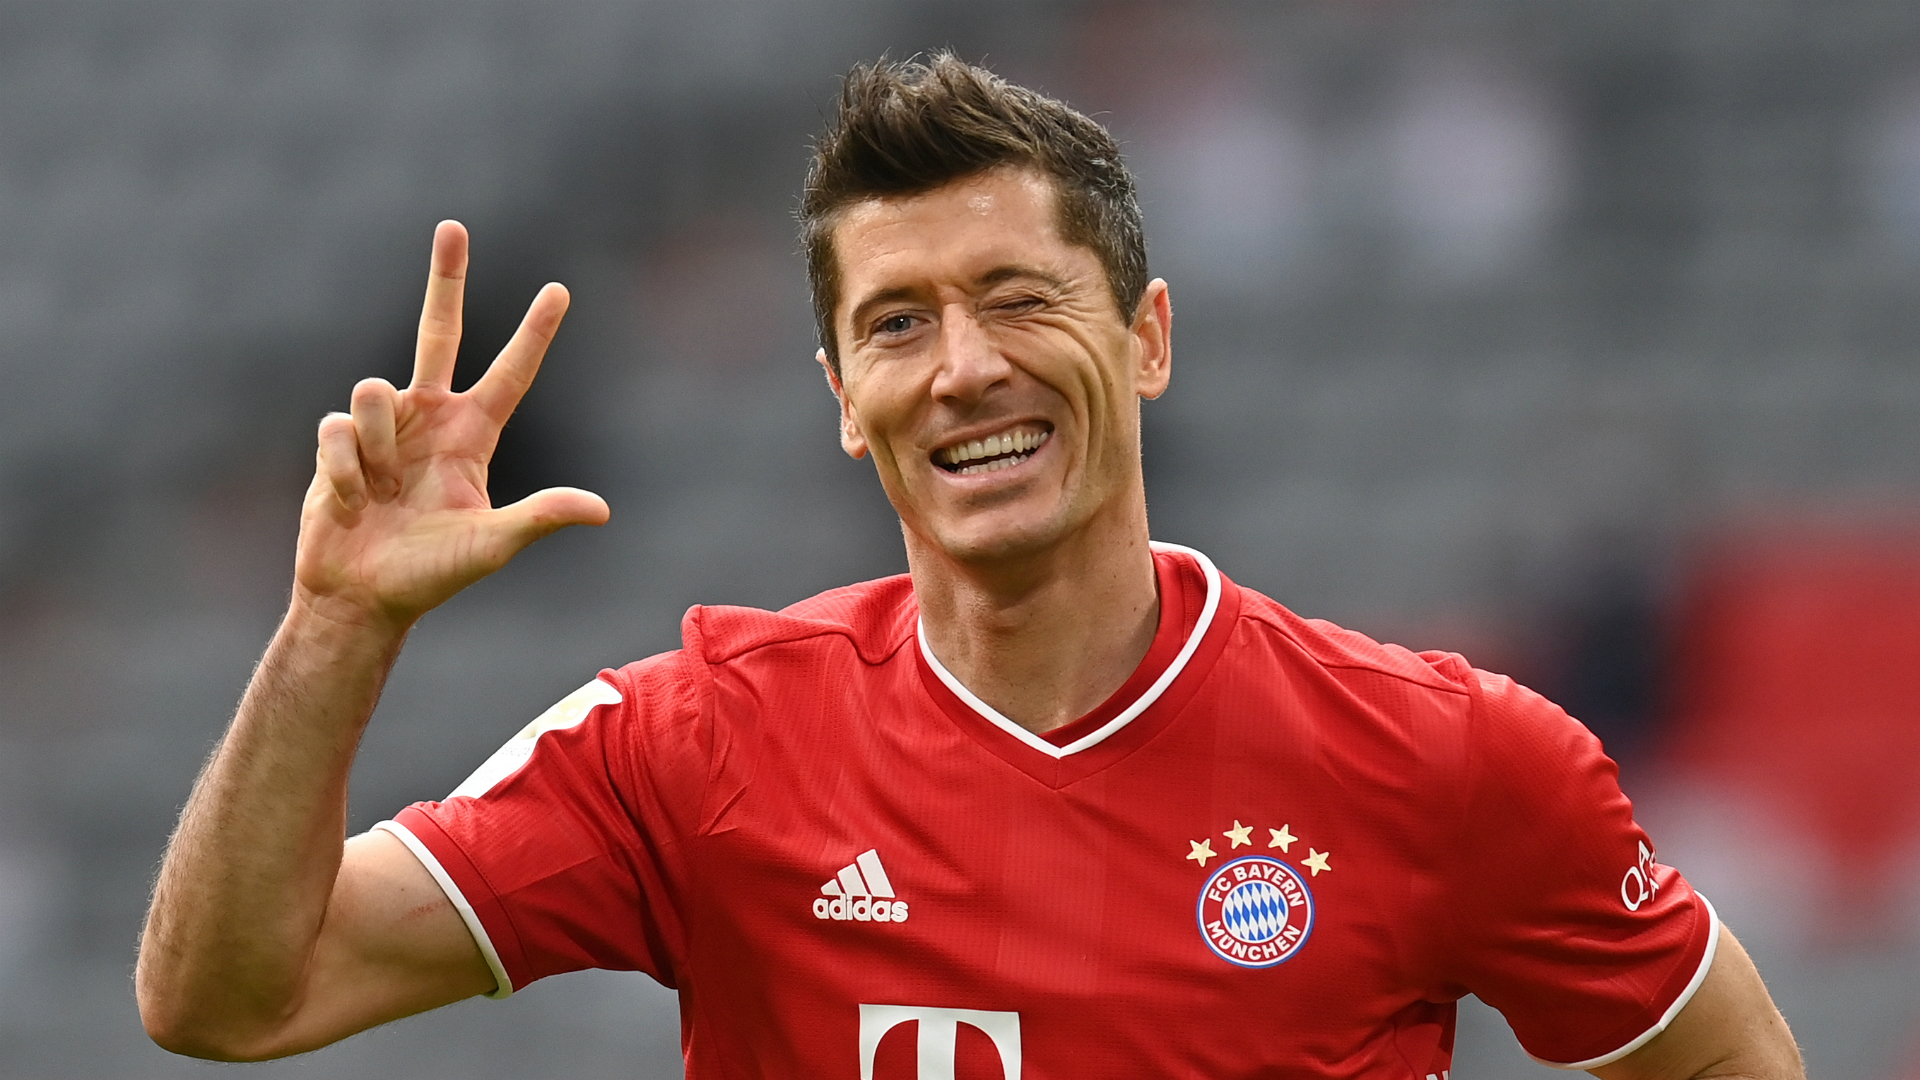 The Best FIFA Men's Player 2020: Why Lewandowski is the obvious choice ahead of Messi and Ronaldo